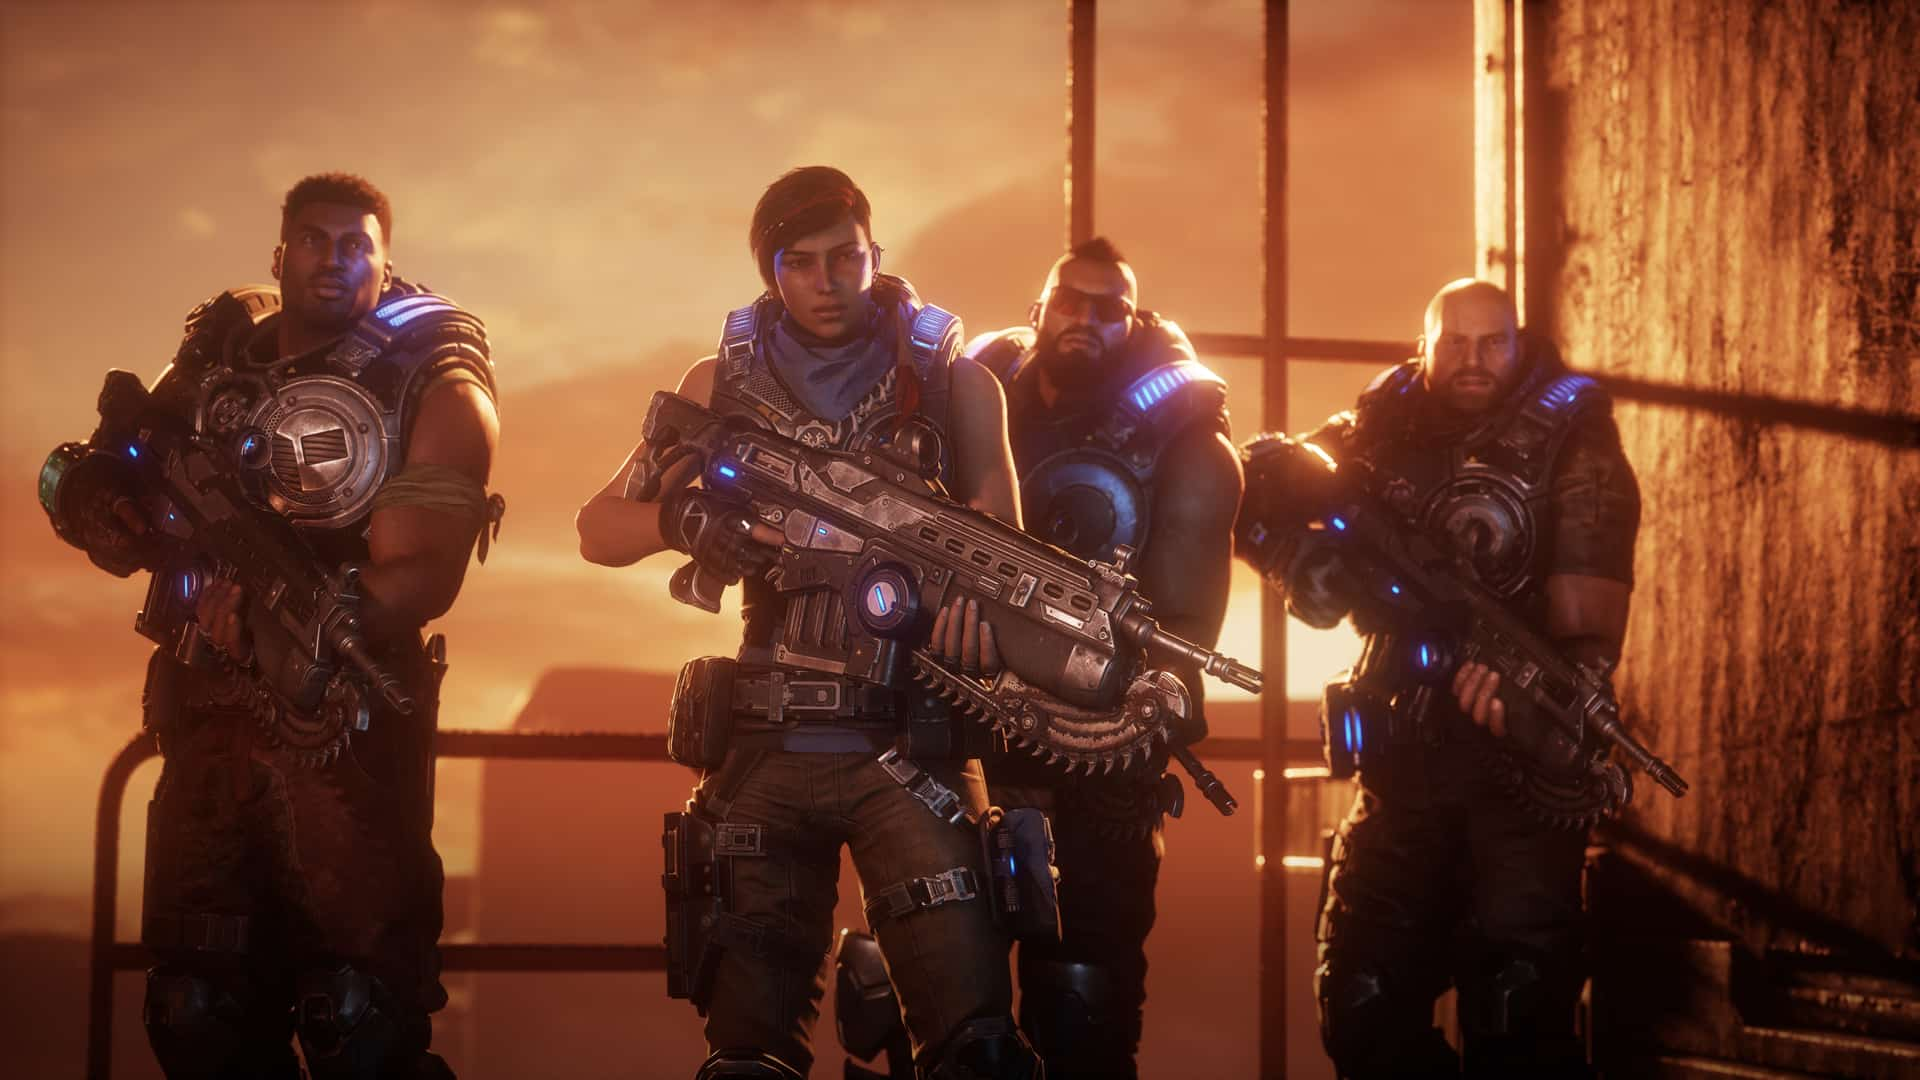 gears 5 the coalition gears of war 4 epic games trilogy morals narrative storytelling